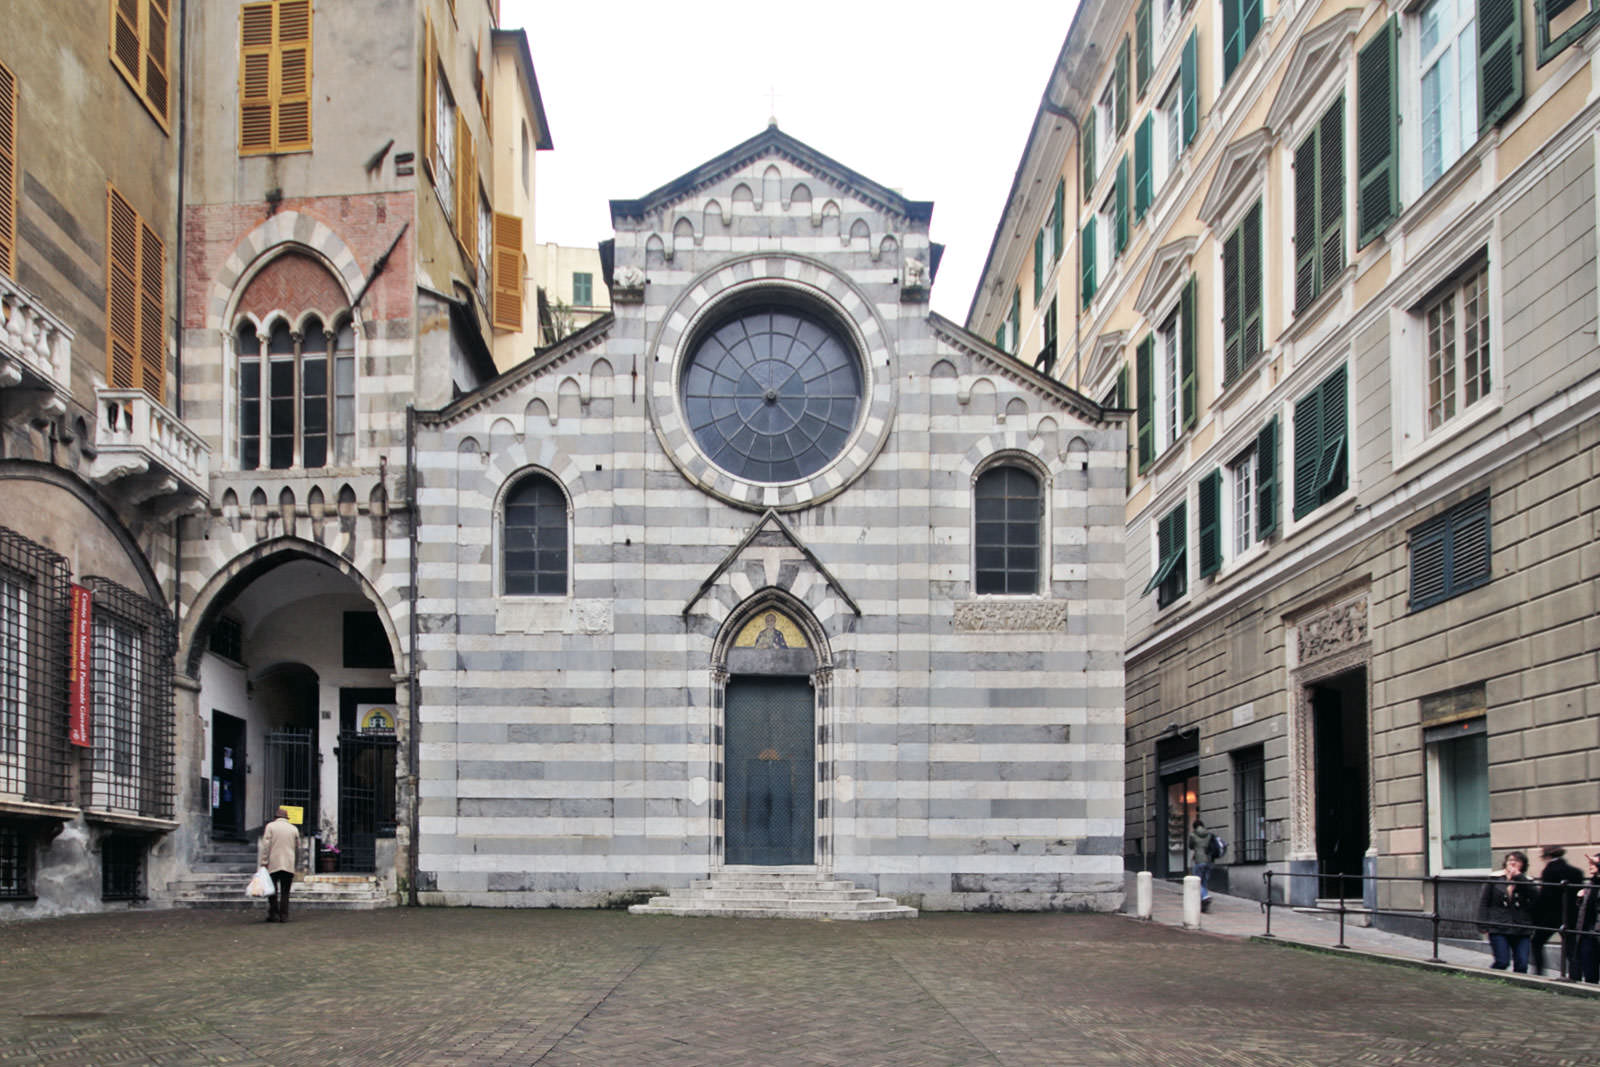 10 Things to Do in Genoa in a Day - What is Genoa Most